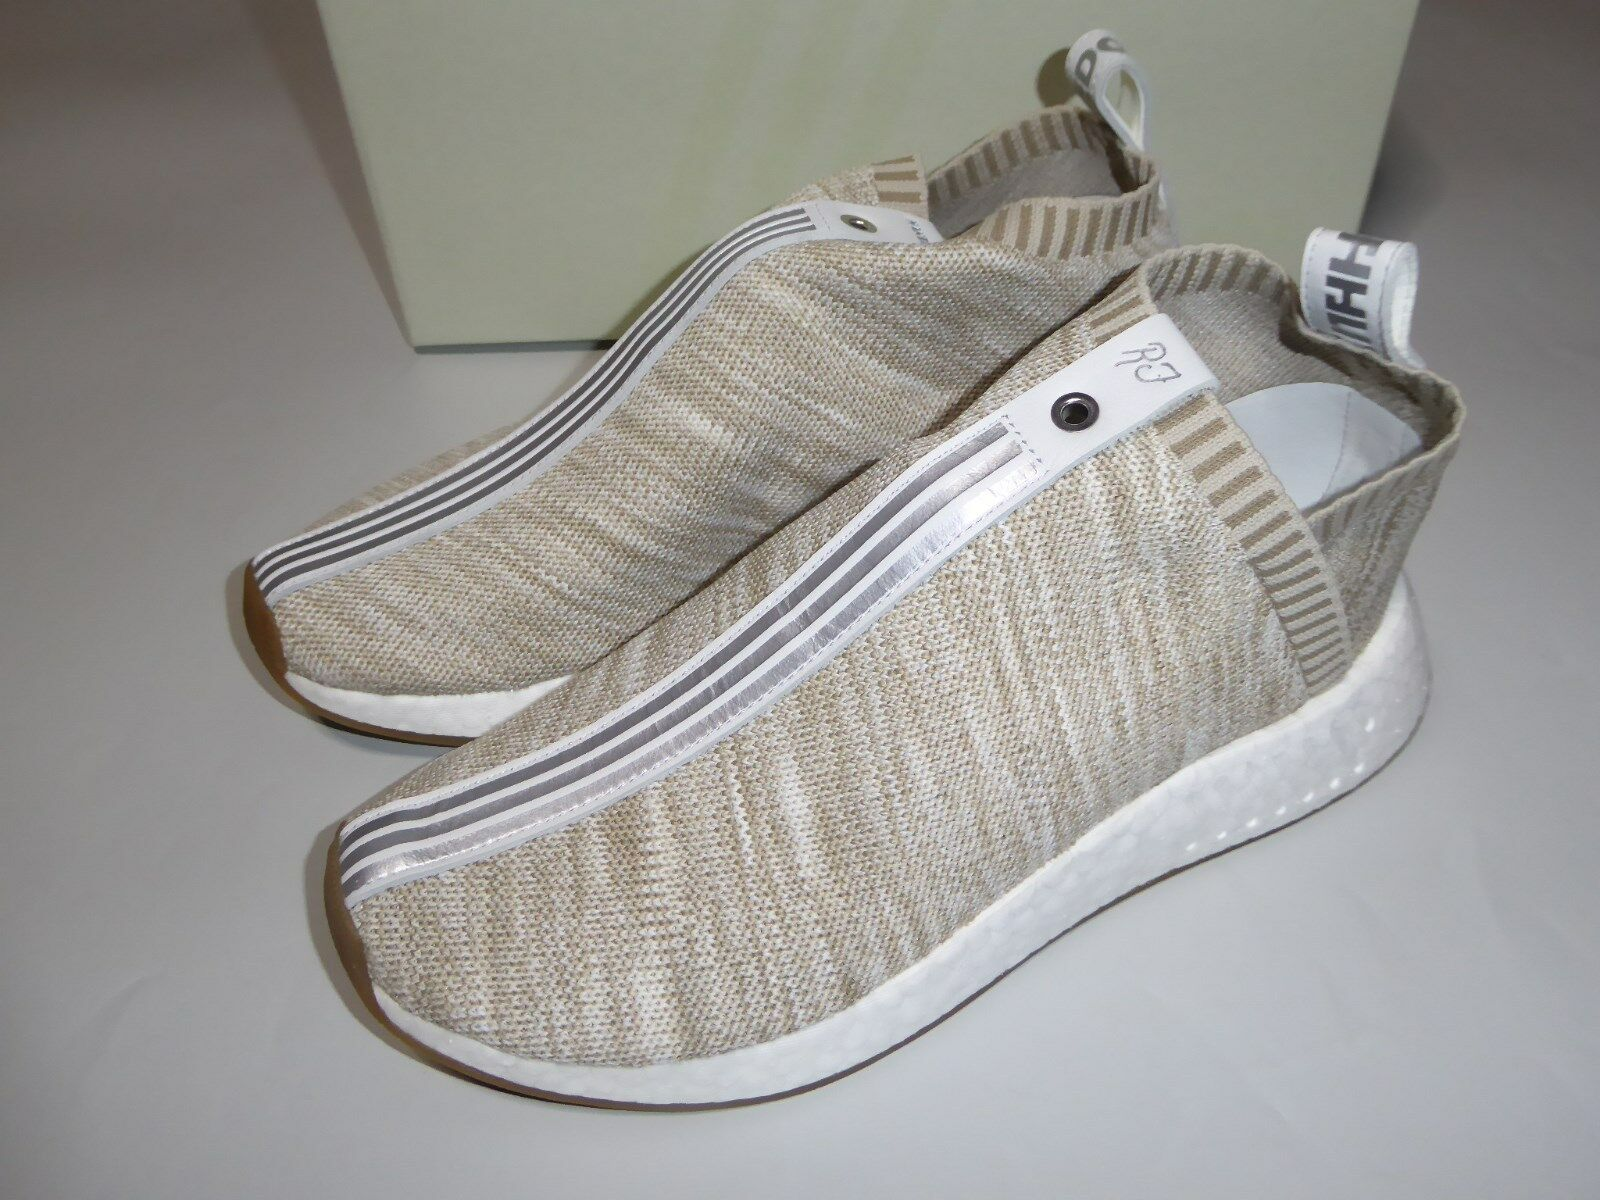 13158 adidas NMD_CS2 NAKED KITH by2597 US9